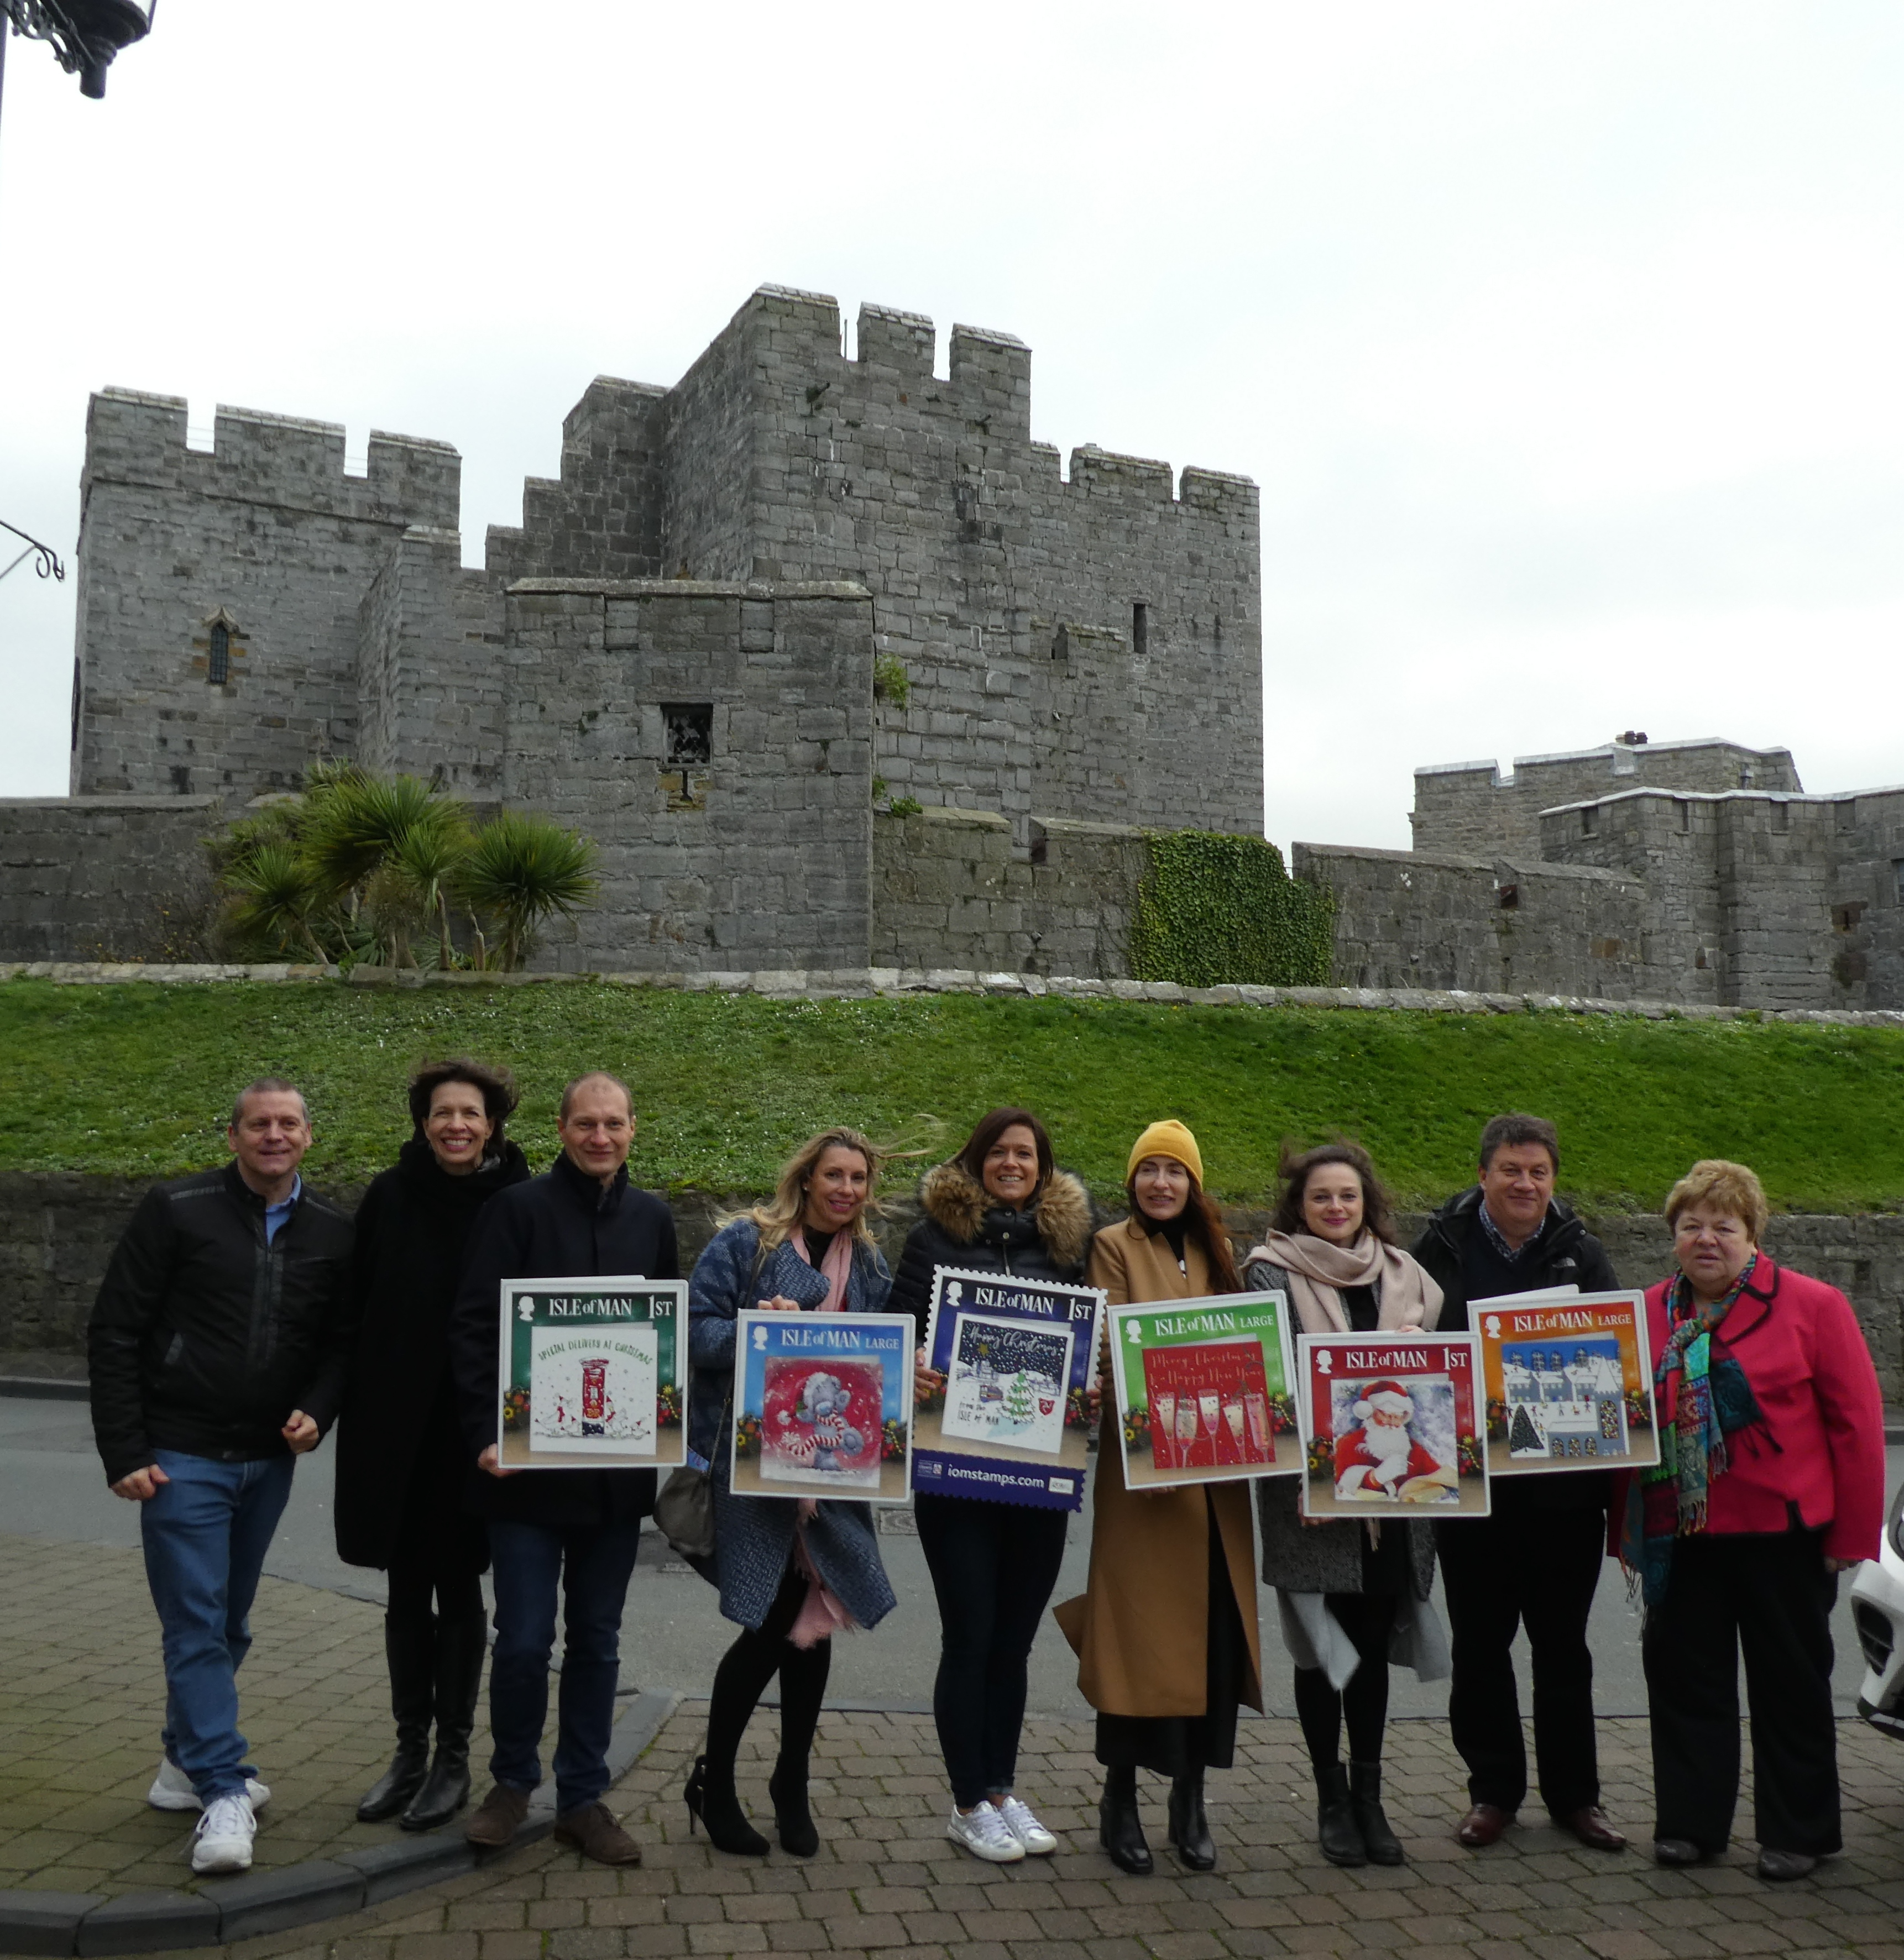 Above: (left-right) Chris Beards (Mantons), Amanda Fergusson (GCA), Stewart Brook (Marina B), Grace Elphinstone (Carte Blanche), Marina Brook (Marina B), Rachel Hare (Belly Button), Amelia Strawson (Ling), John Partridge (Peartree Heybridge) and Maxine Cannon (Isle of Man Post Office) in front of the Castletown castle.